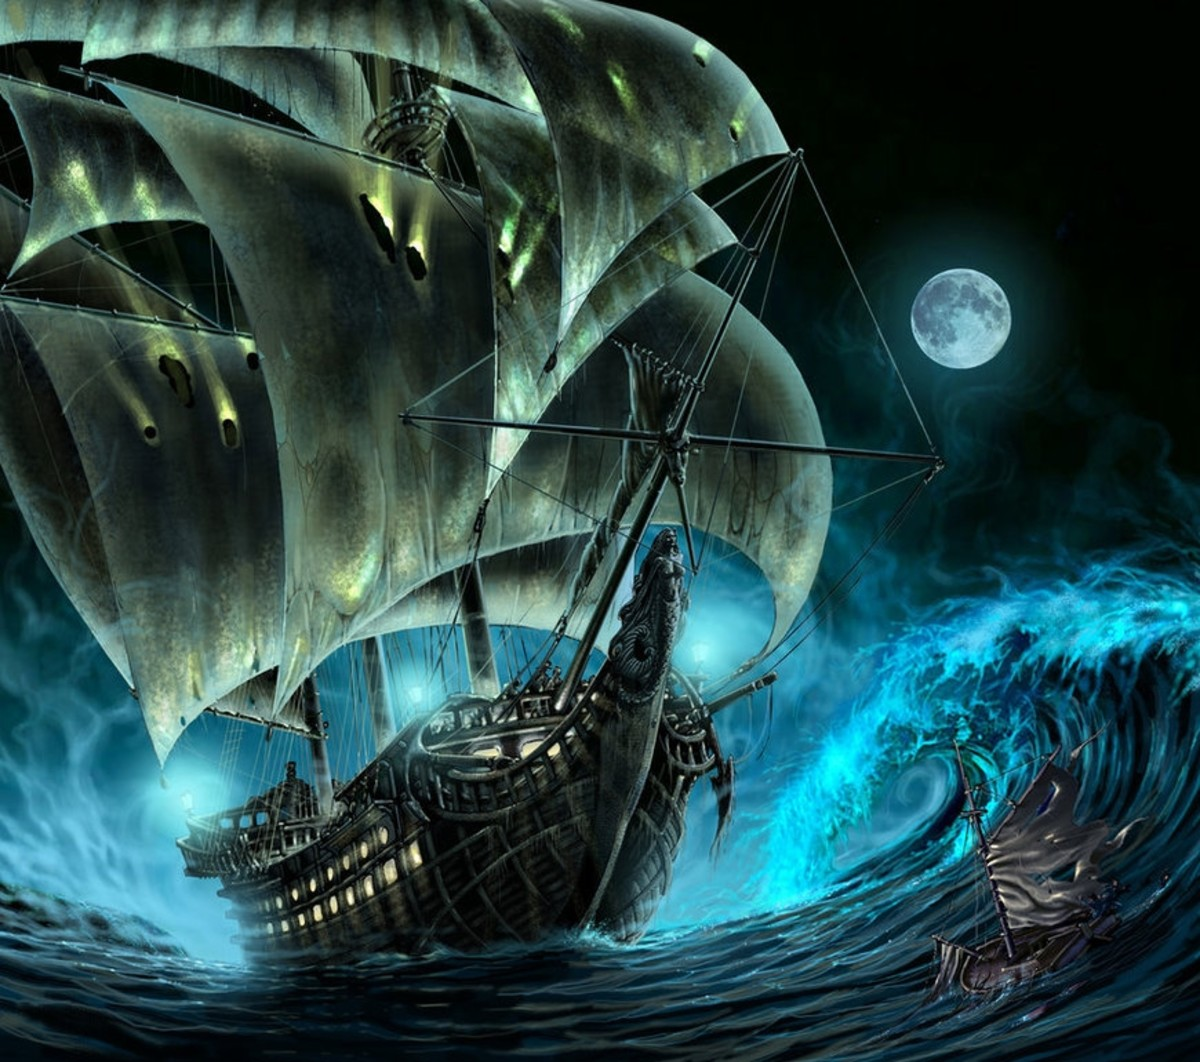 Mysteries and Ghost Ships at Sea